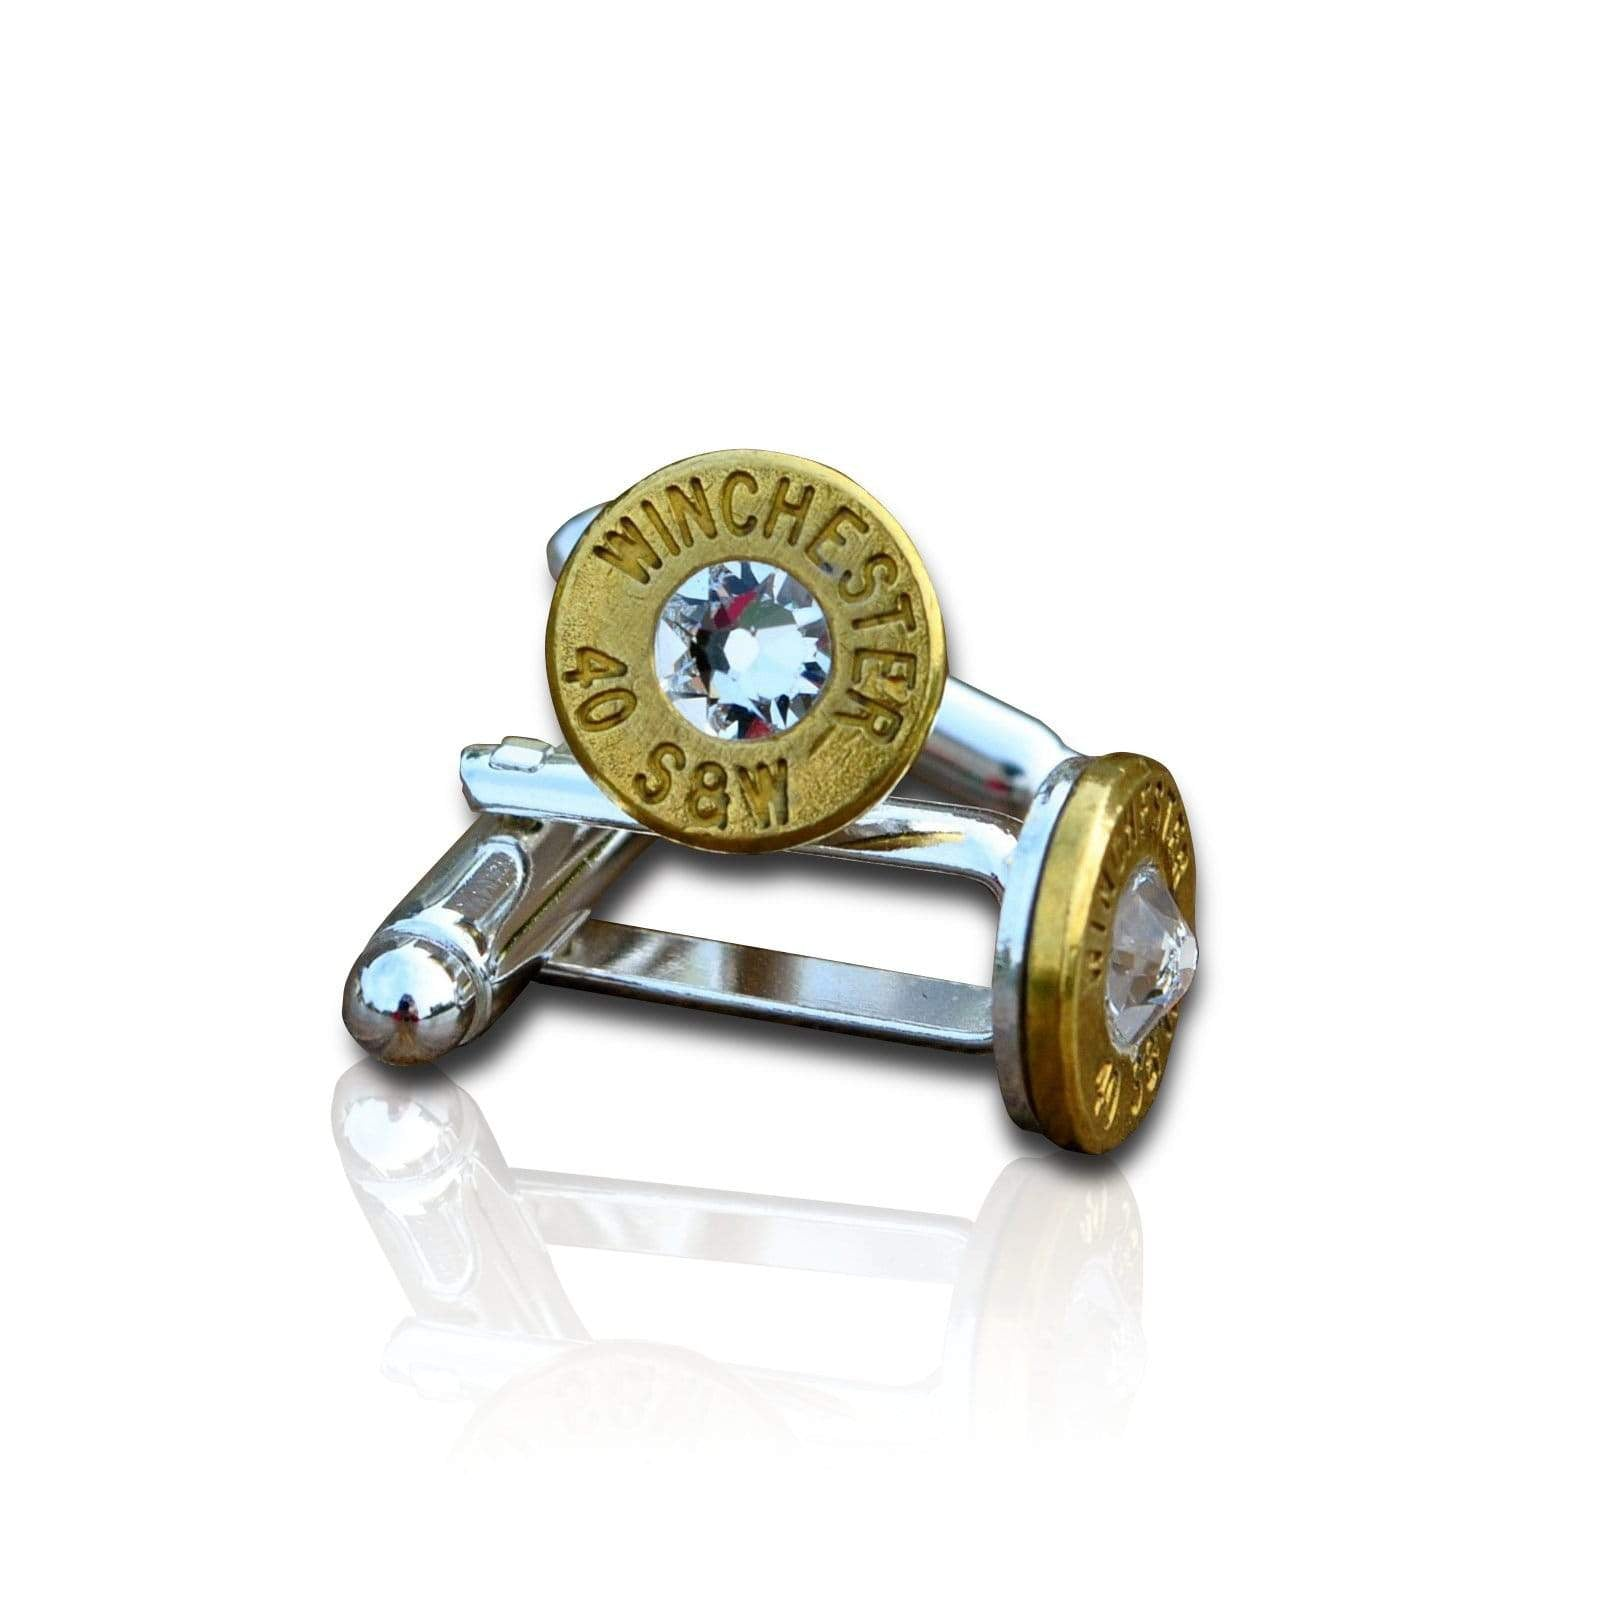 Men's Cufflinks | Lingo Luxe The Gunslinger-Lingo Luxe Bespoke